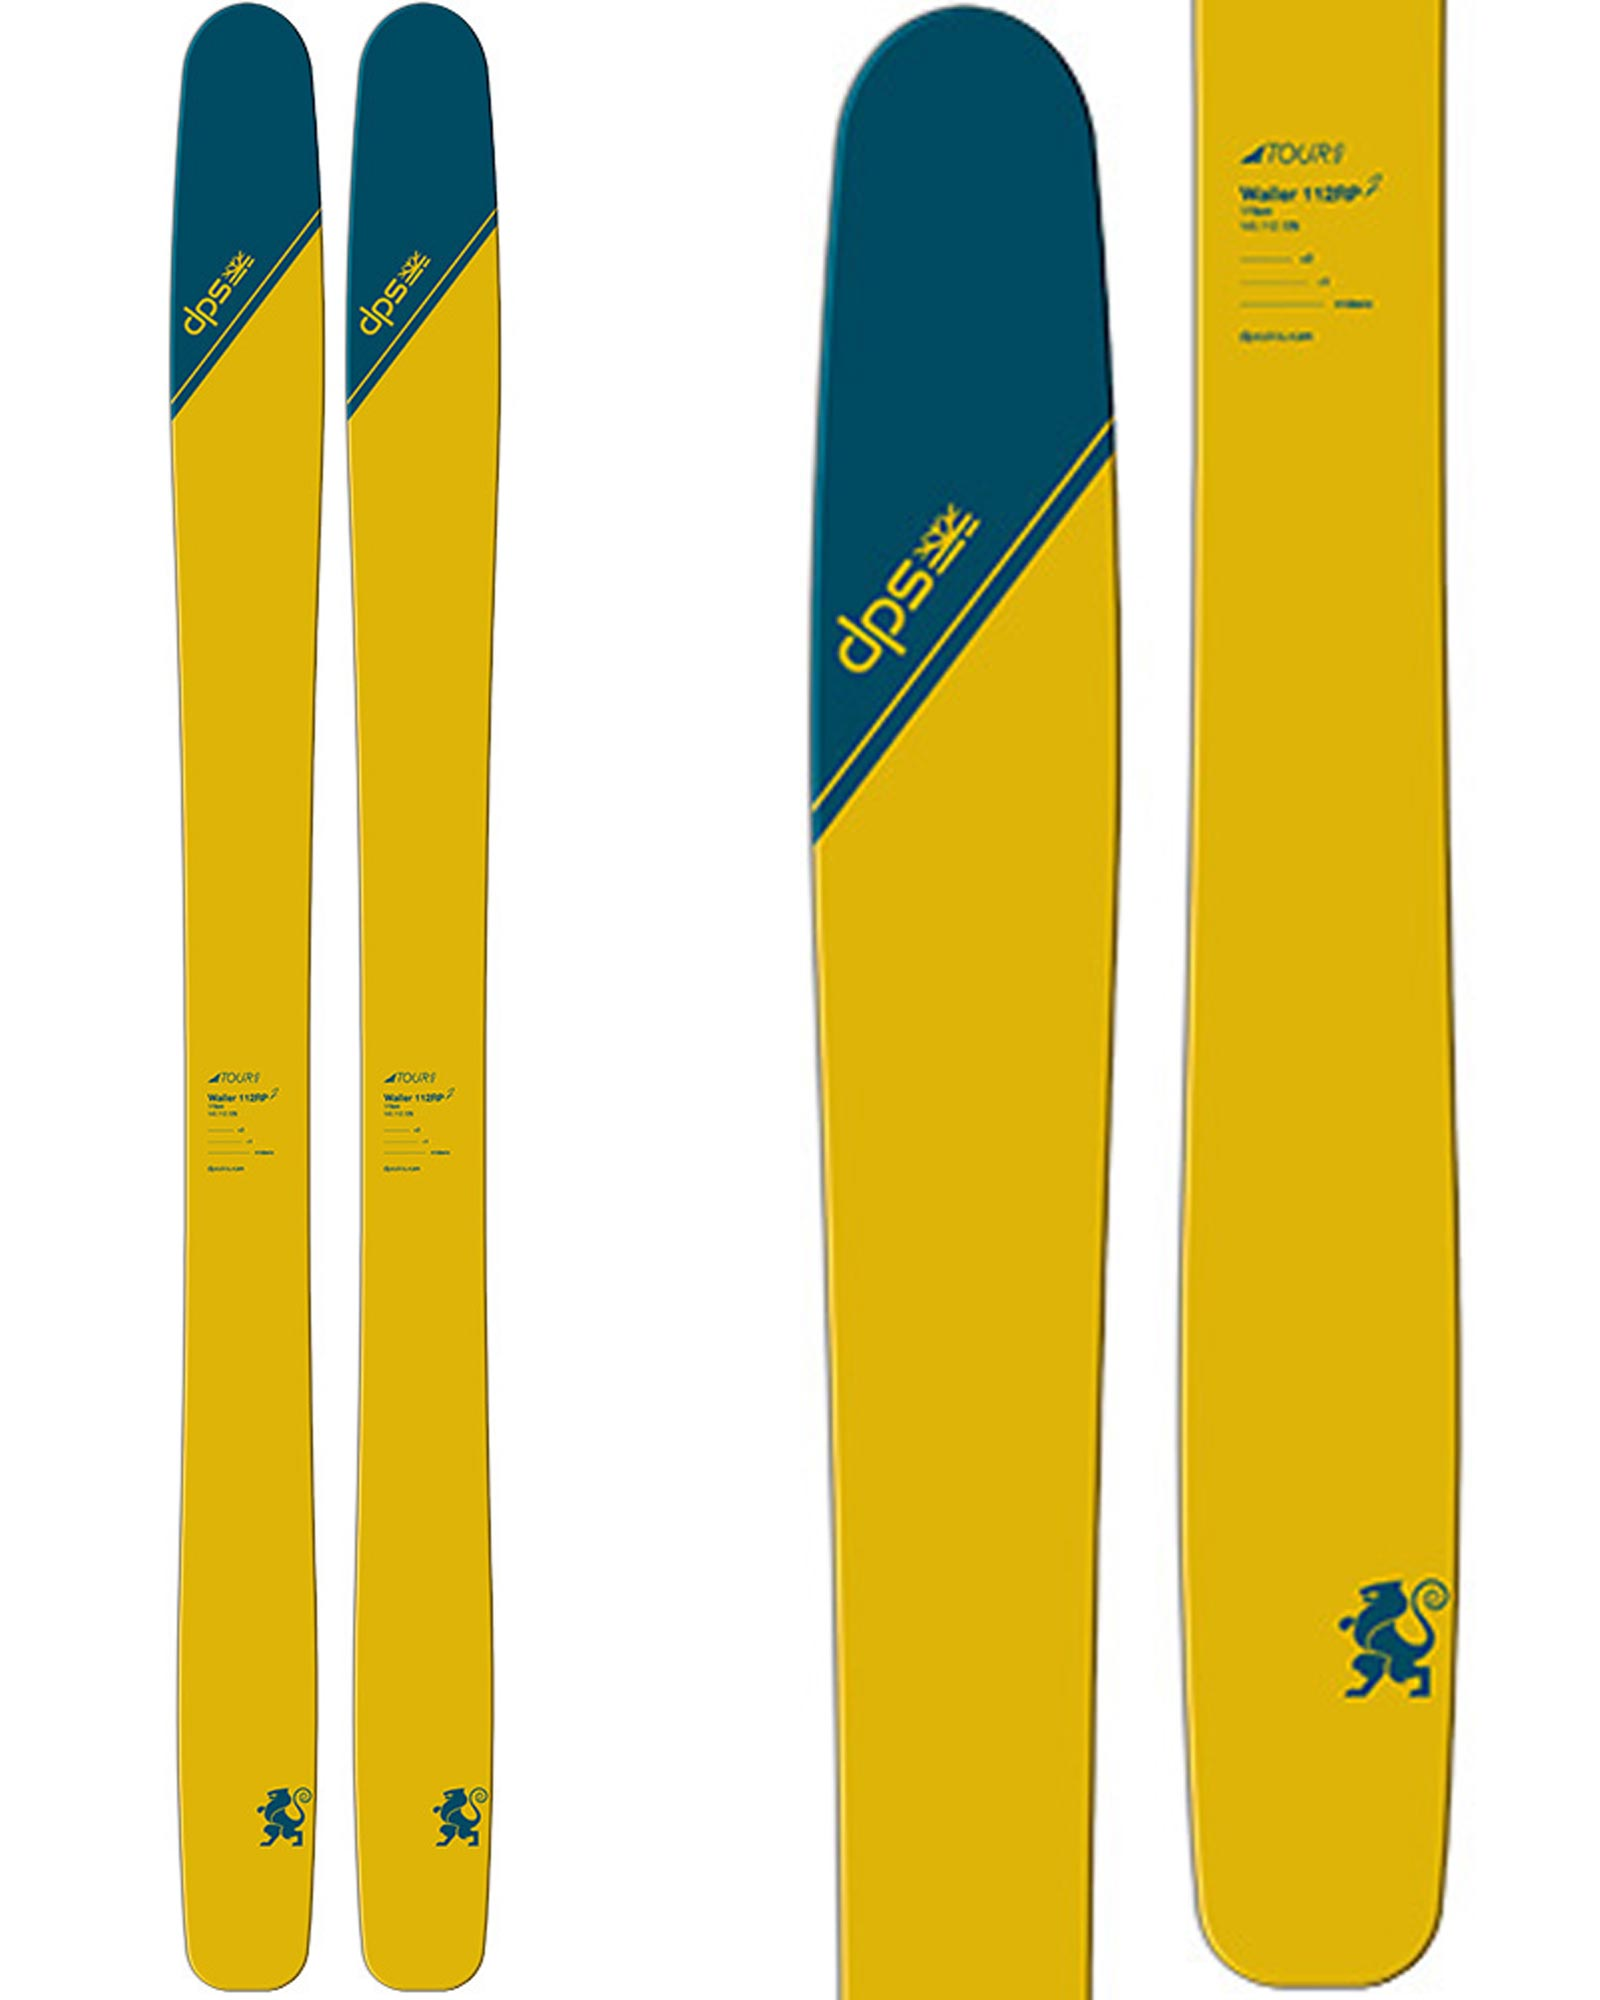 DPS Men's Wailer 112 Tour1 Backcountry Skis 2019 / 2020 0